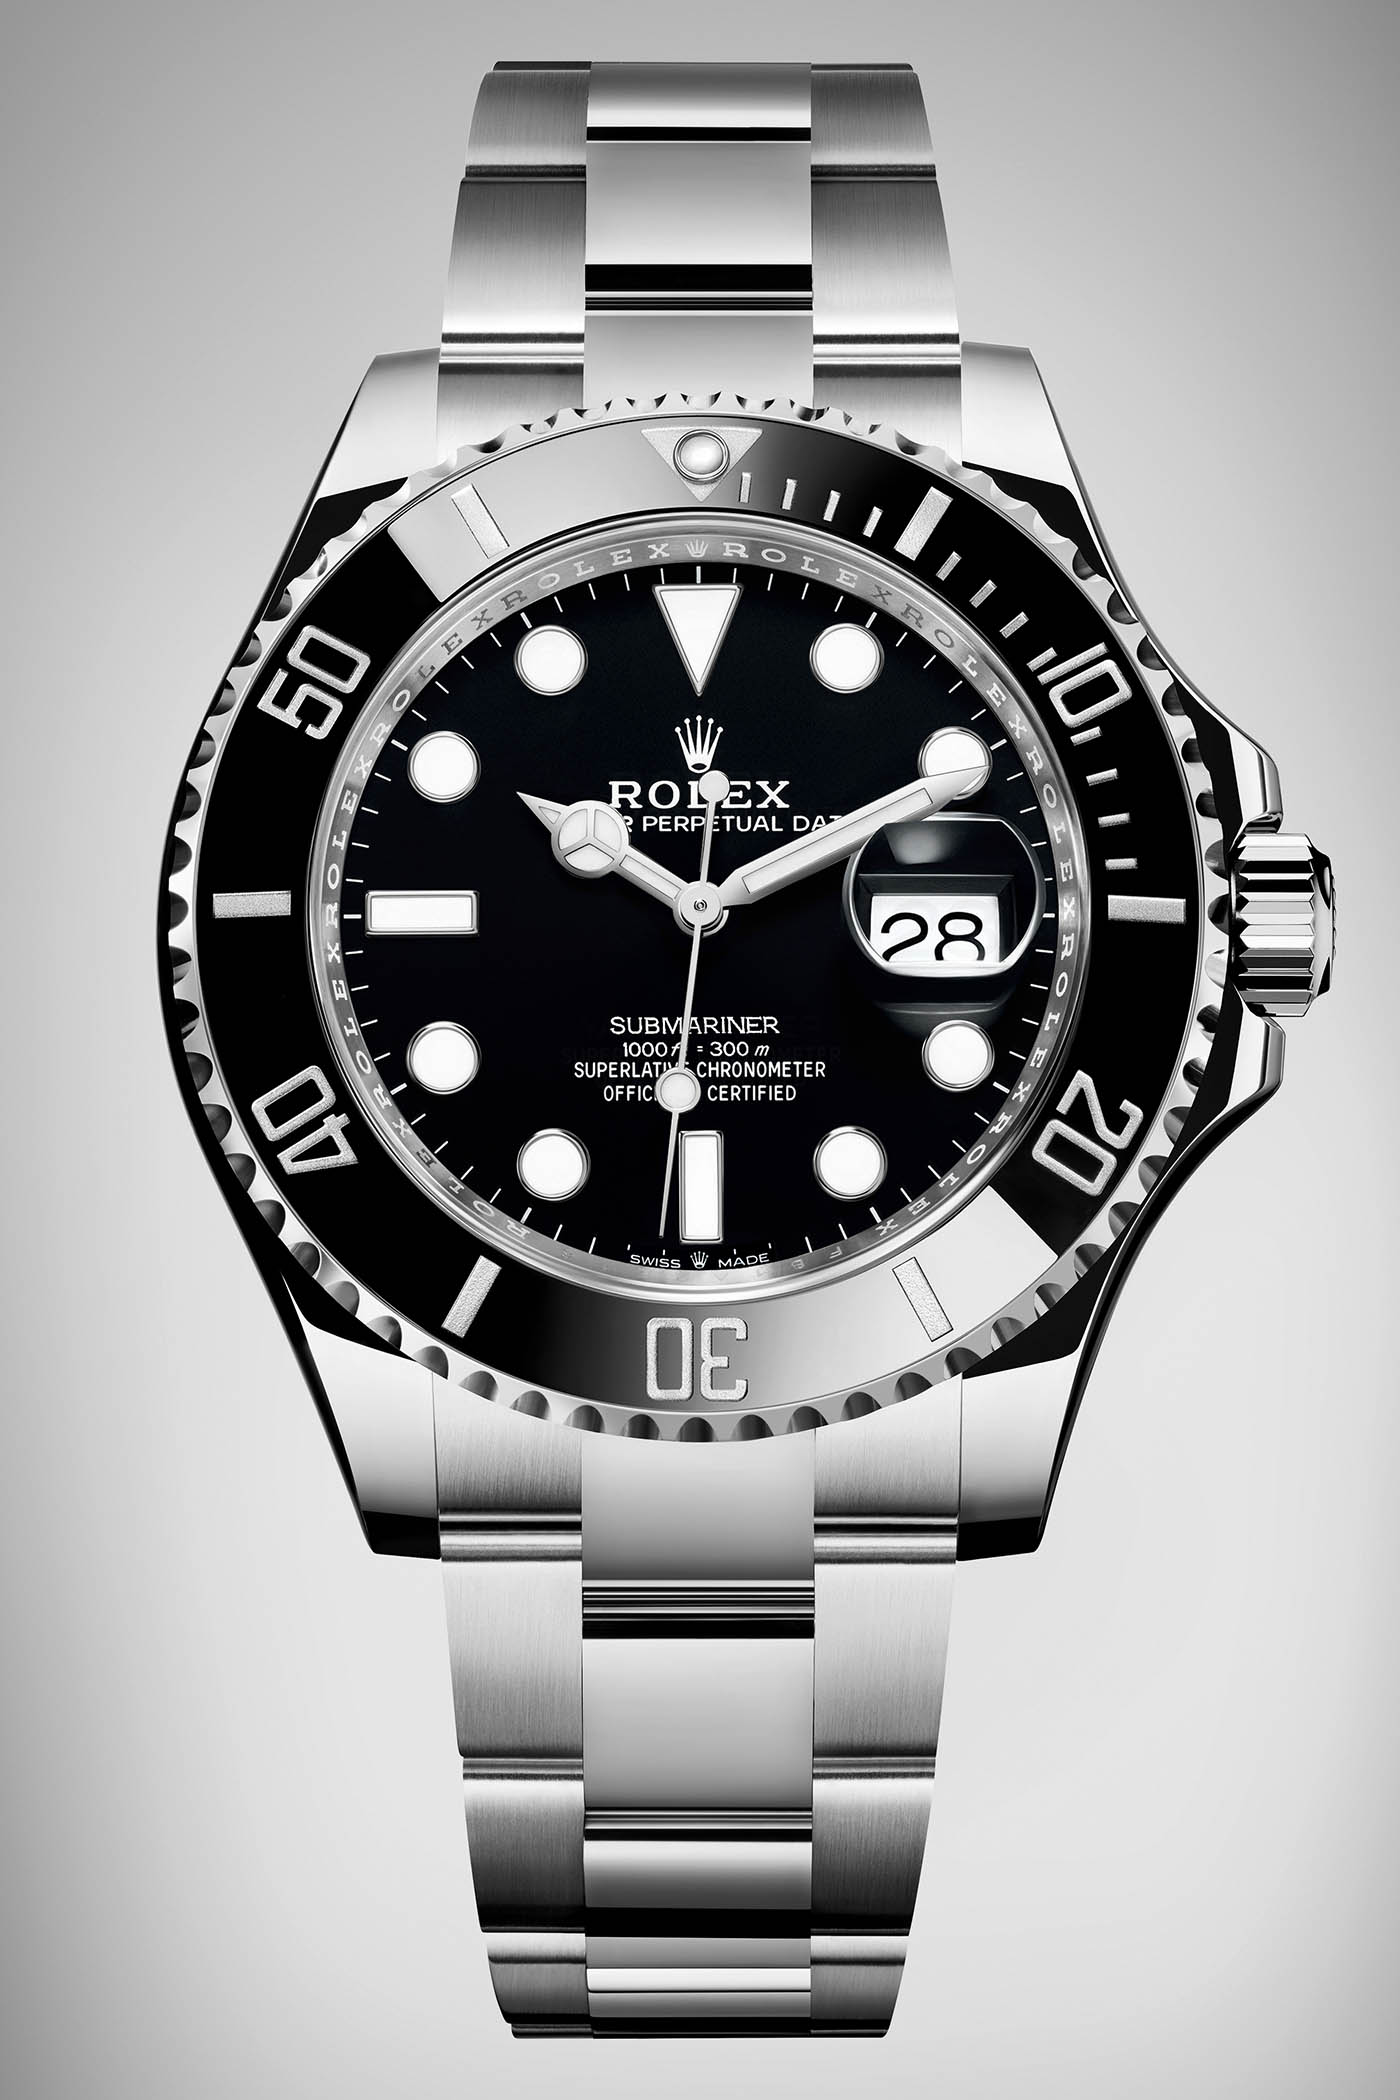 Rolex Submariner 36 steel - Rolex Baselworld 2019 - Rolex 2019 Predictions